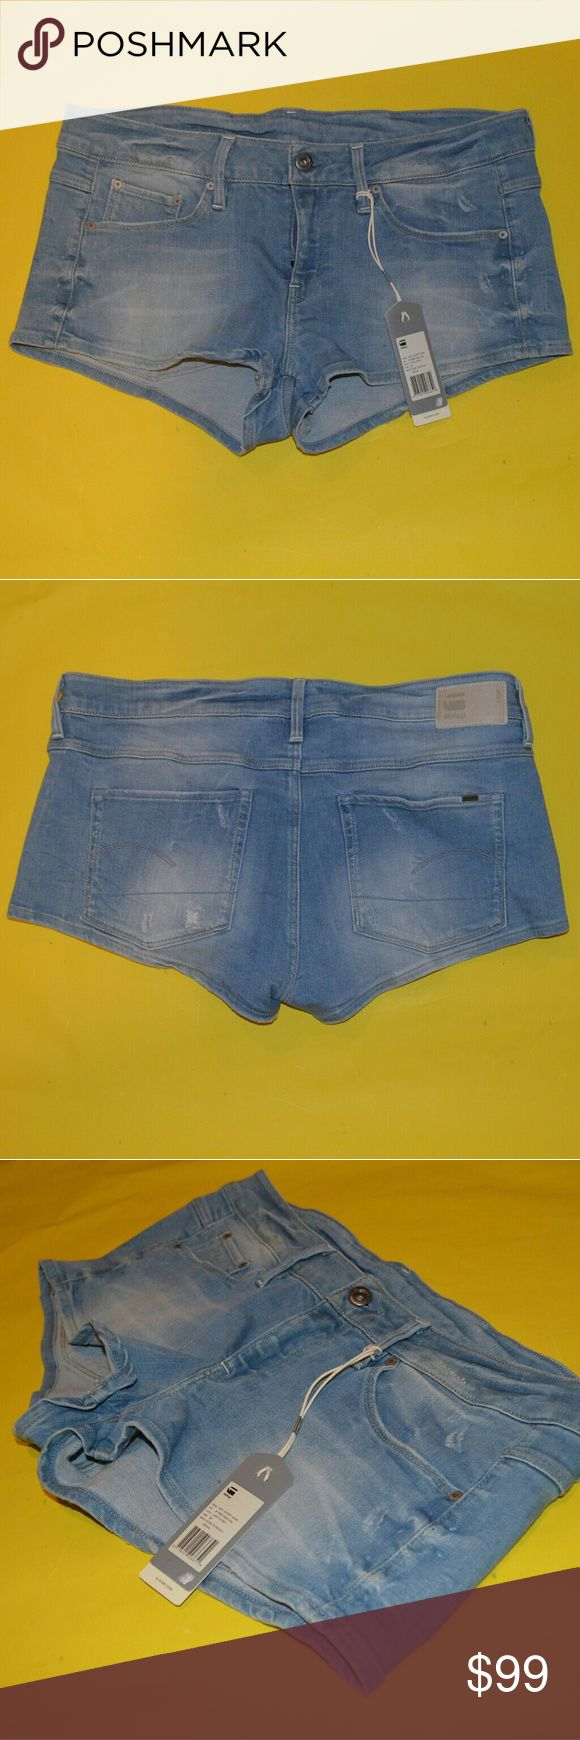 NWT G Star Raw Denim Shorts Size 28 Brand new and perfect. Super rare shorts from G Star brand. Jean shorts.  Size 28. True to size. G-Star. G-Star Shorts Jean Shorts